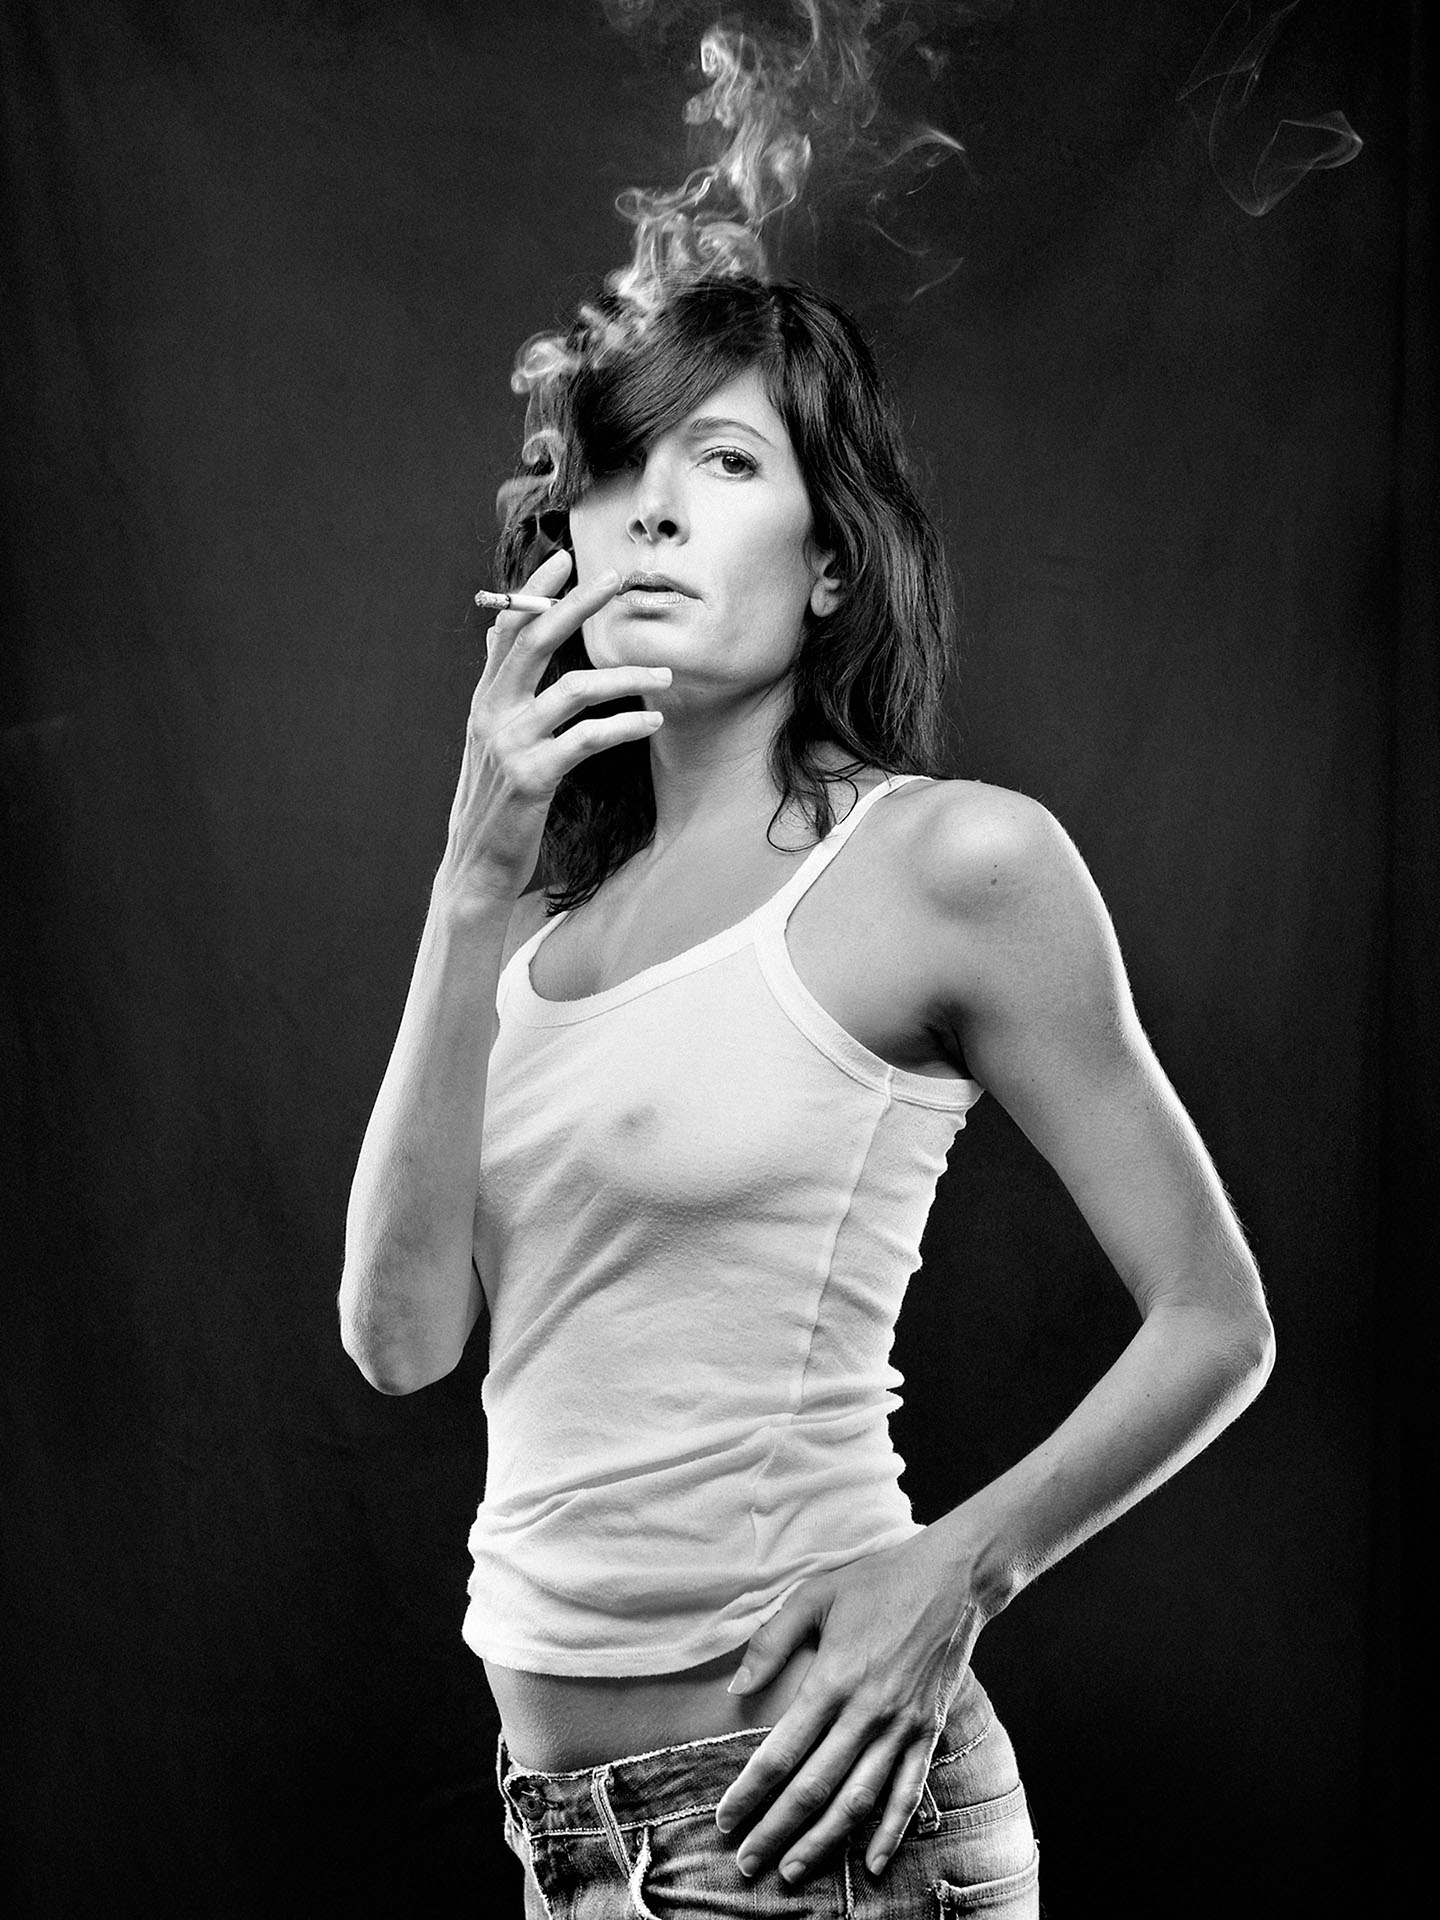 portrait of Anne-Marie Cadieux in black and white wearing white short tank top and low jeans smoking a cigarette on black fabric background by Jocelyn Michel for Voir